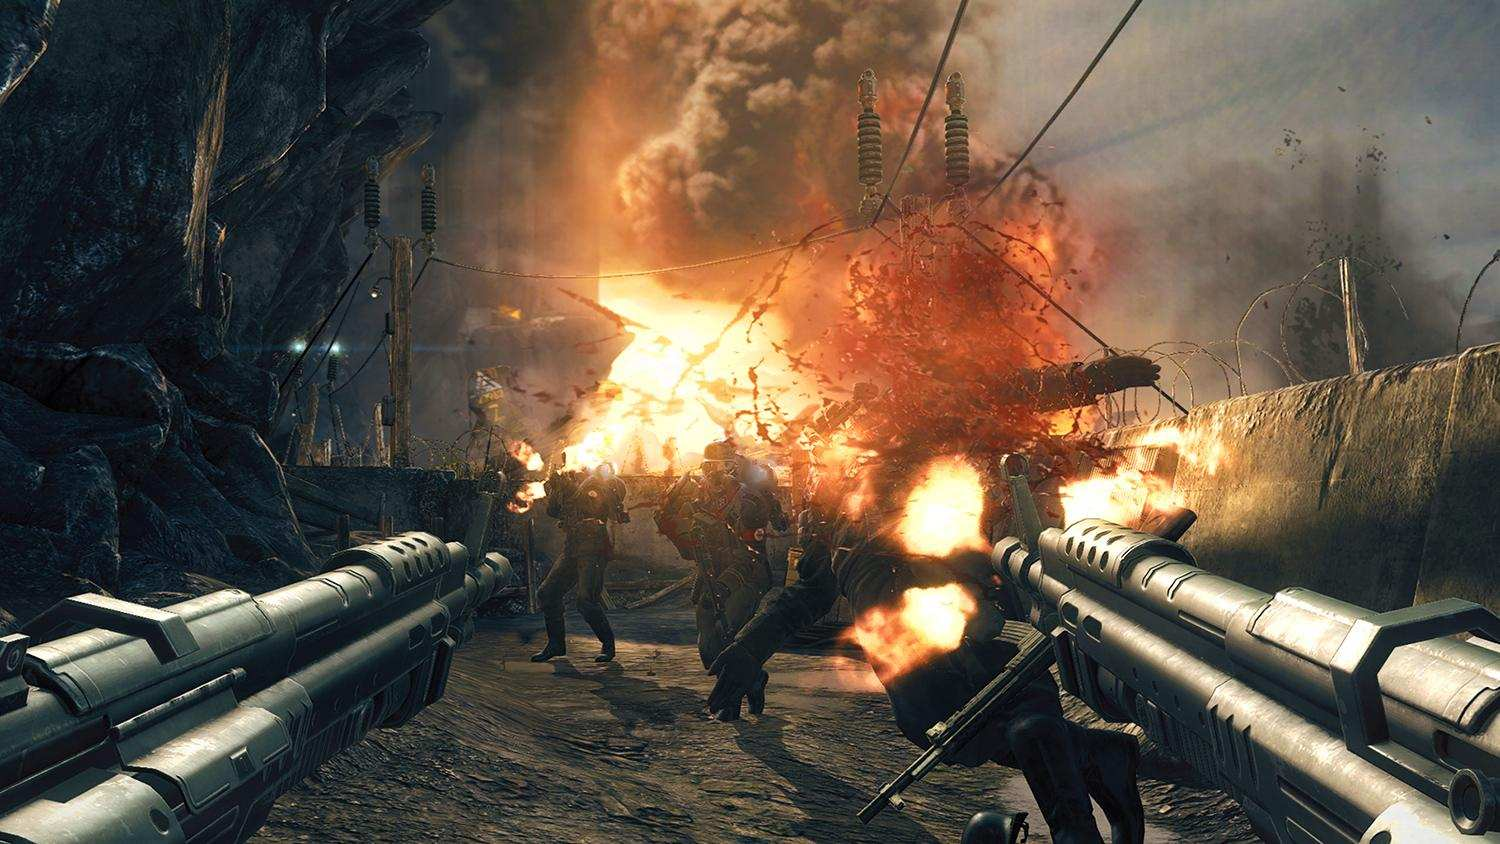 Wolfenstein-The-New-Order-hands-on-screenshot-Trenches